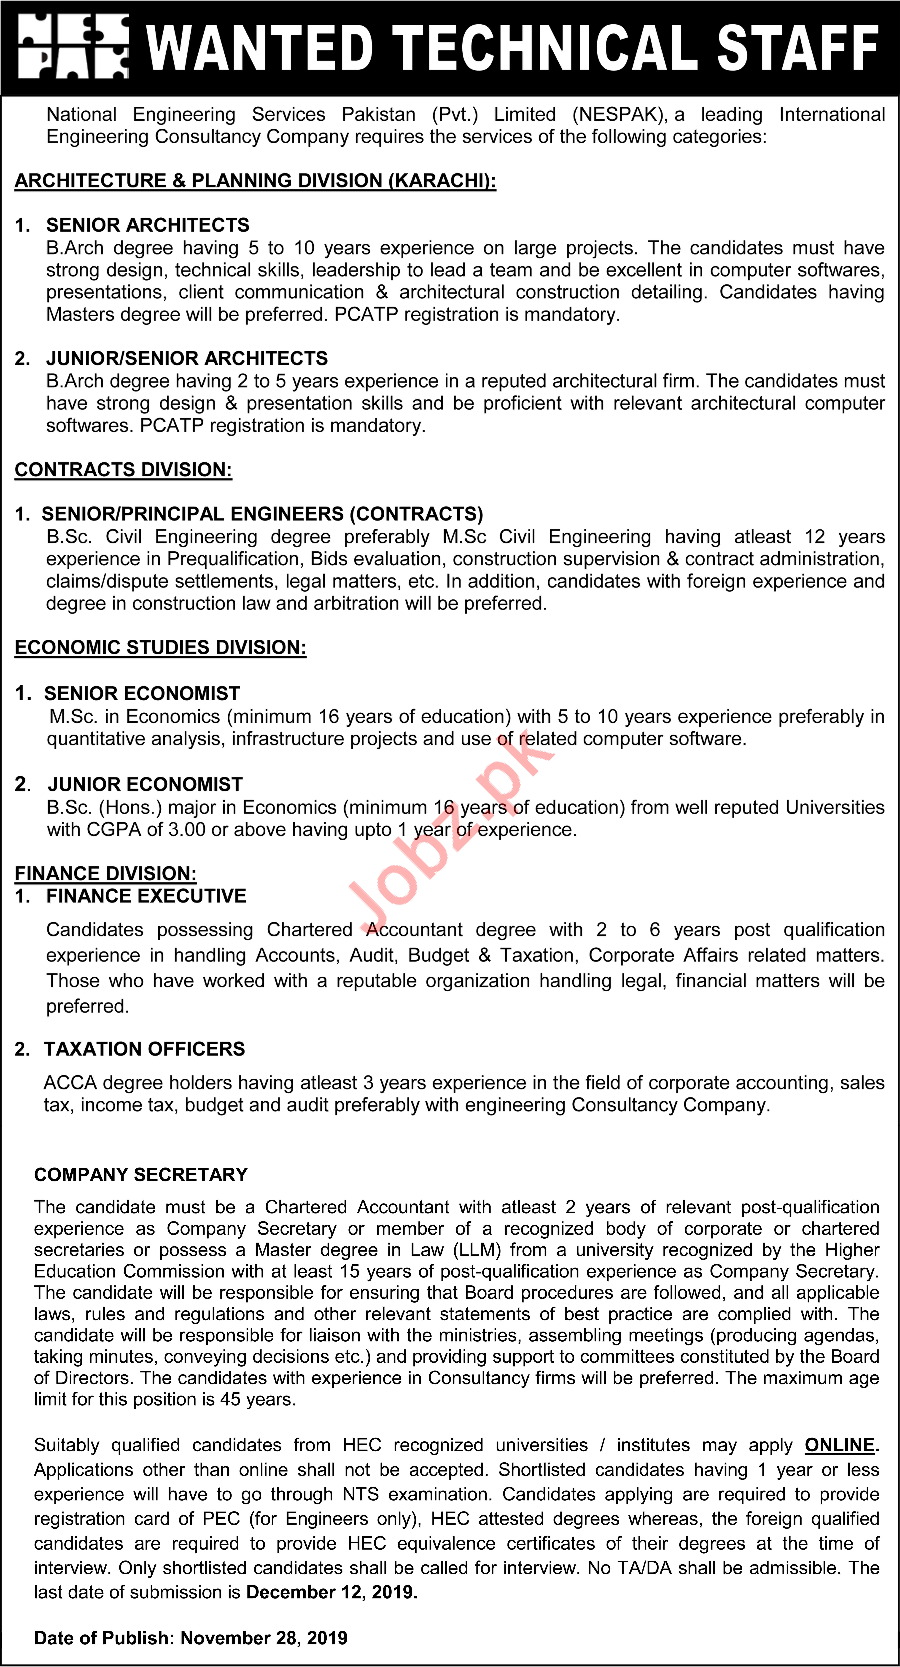 National Engineering Services Pakistan NESPAK Jobs 2019